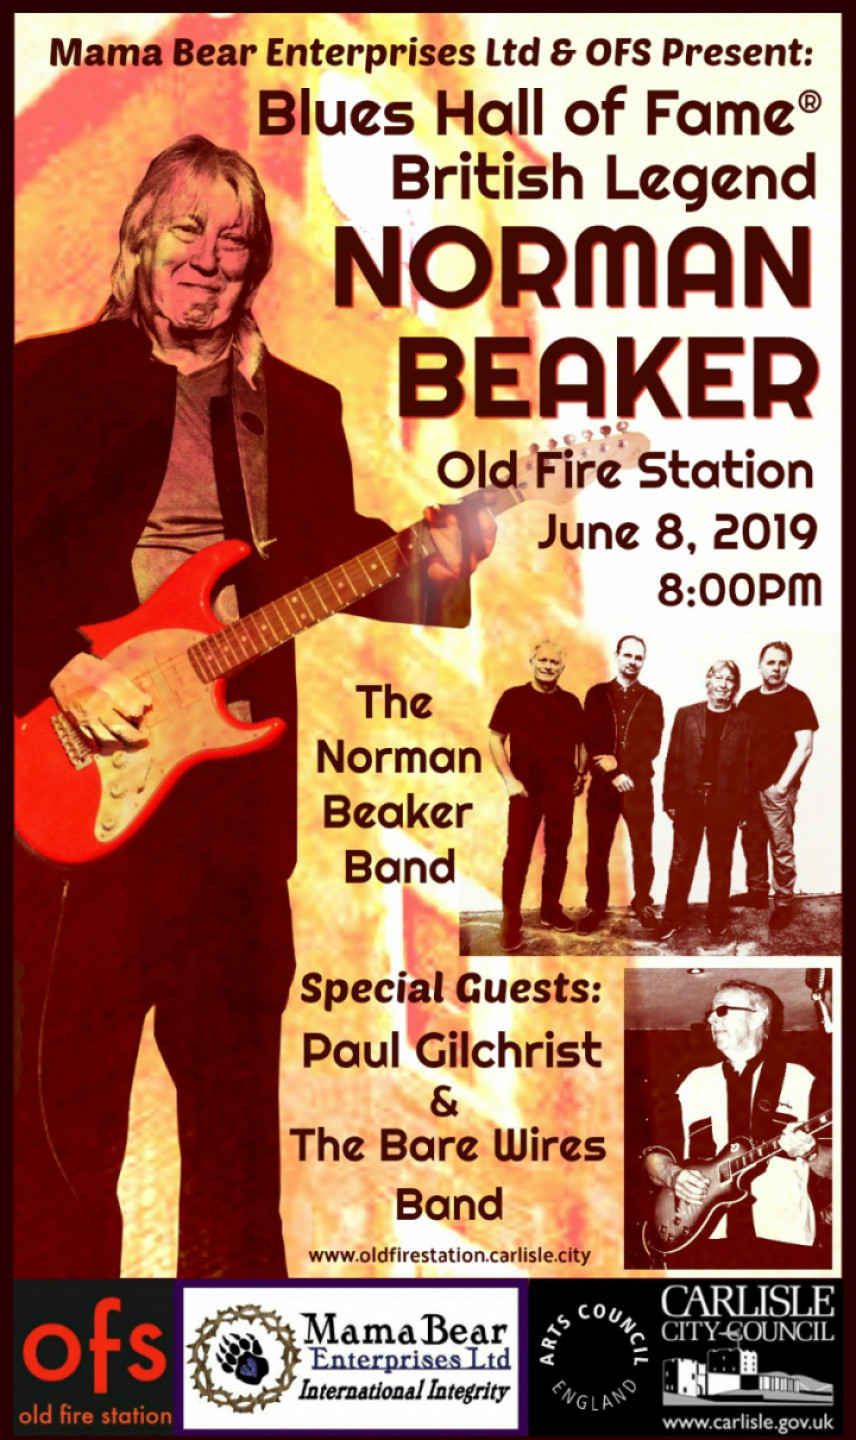 Blues Hall of Fame British Legend Norman Beaker & Band at Old Fire Station, Carlisle